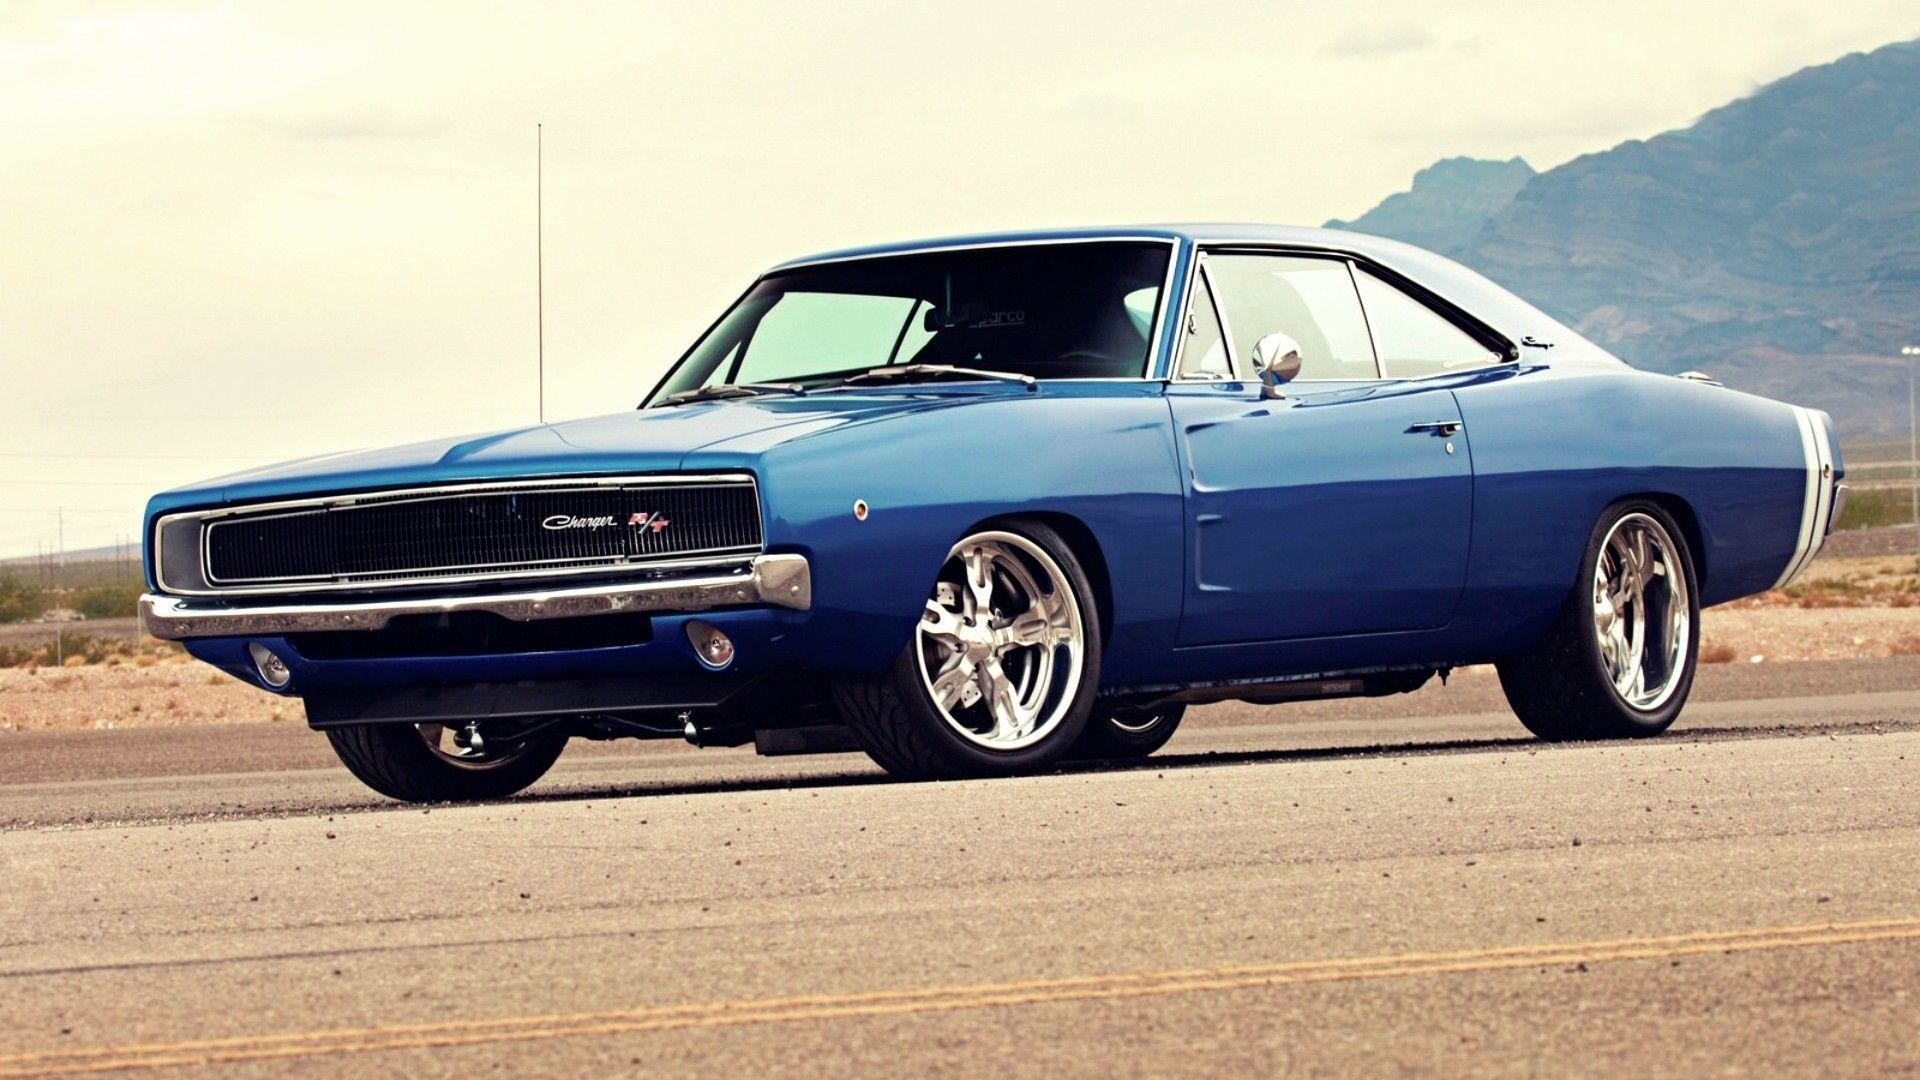 1920x1080 1970 Dodge Charger Wallpaper Car Pictures